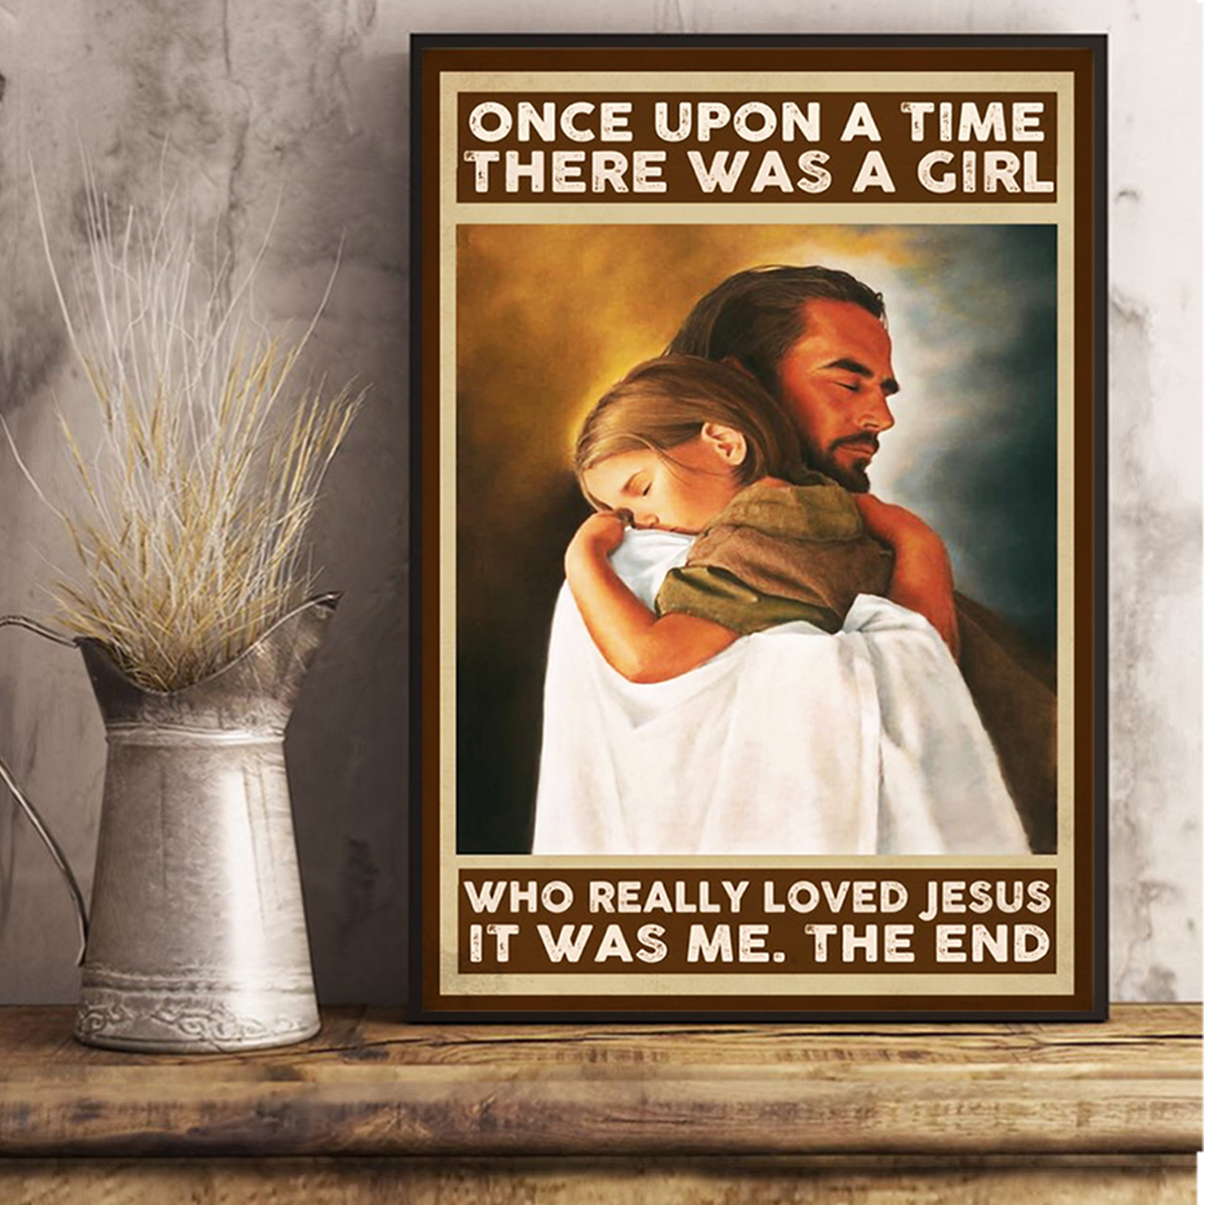 Once upon a time there was a girl who reall loved jesus poster A2